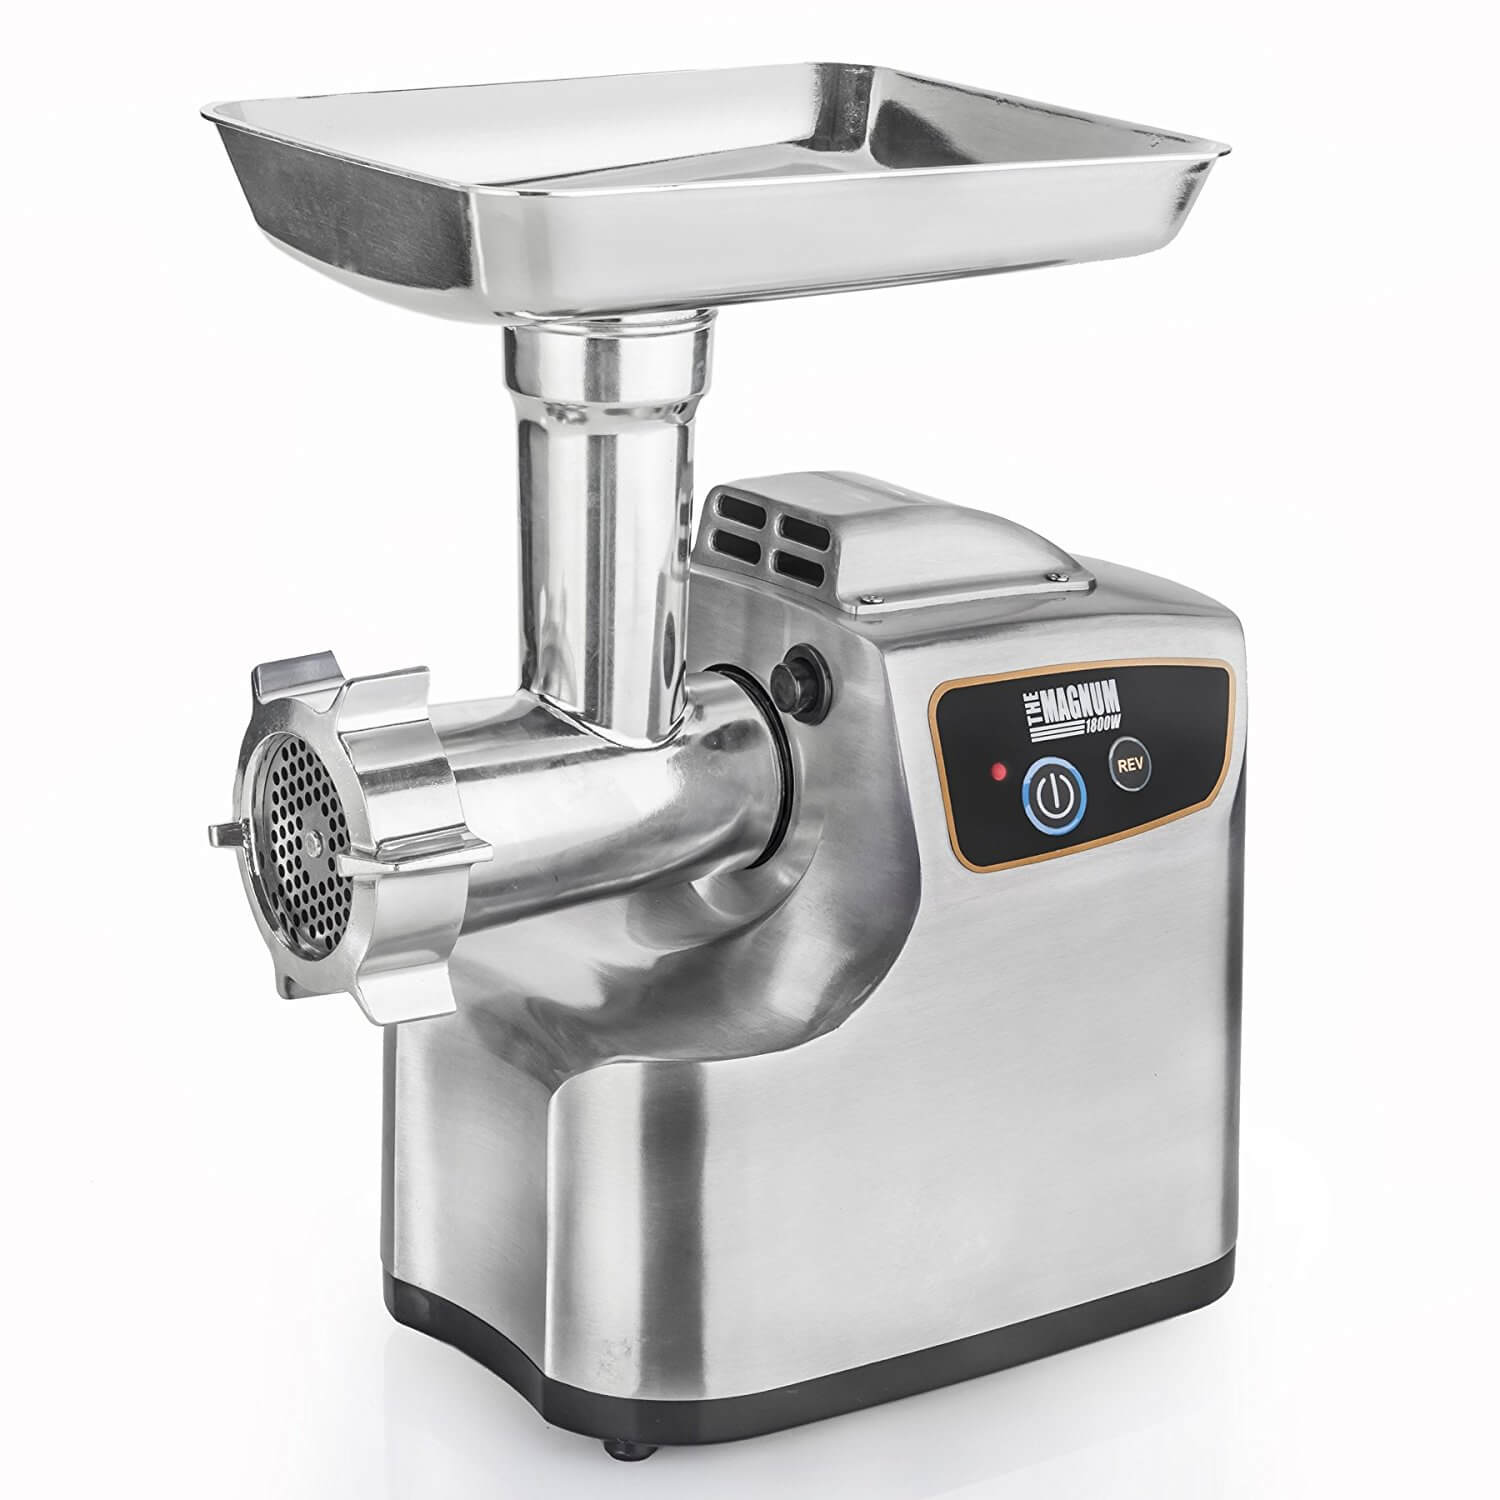 how to use the STX-1800-MG meat grinder